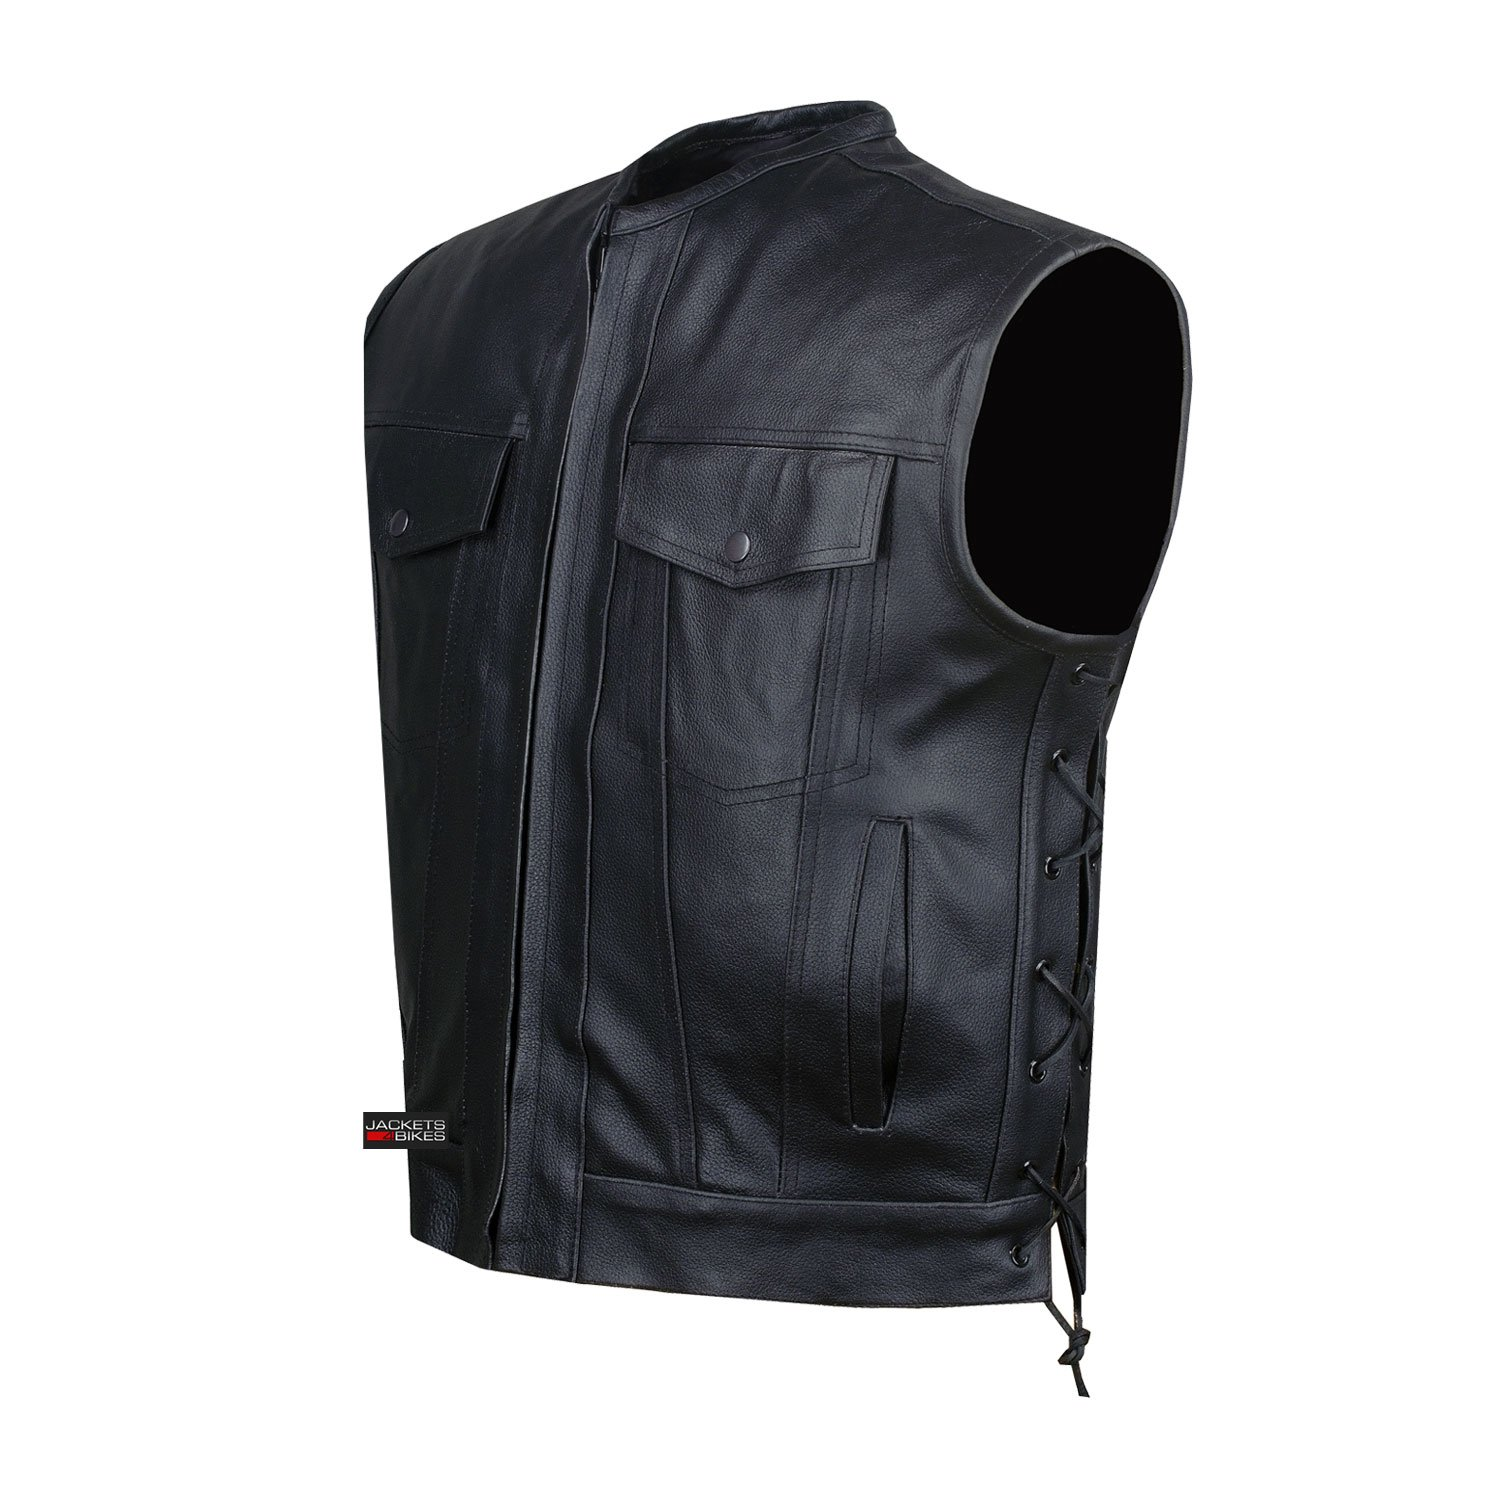 SOA Motorcycle Sons of Anarchy ARMOR Leather Open Collar Leather Biker Vest L